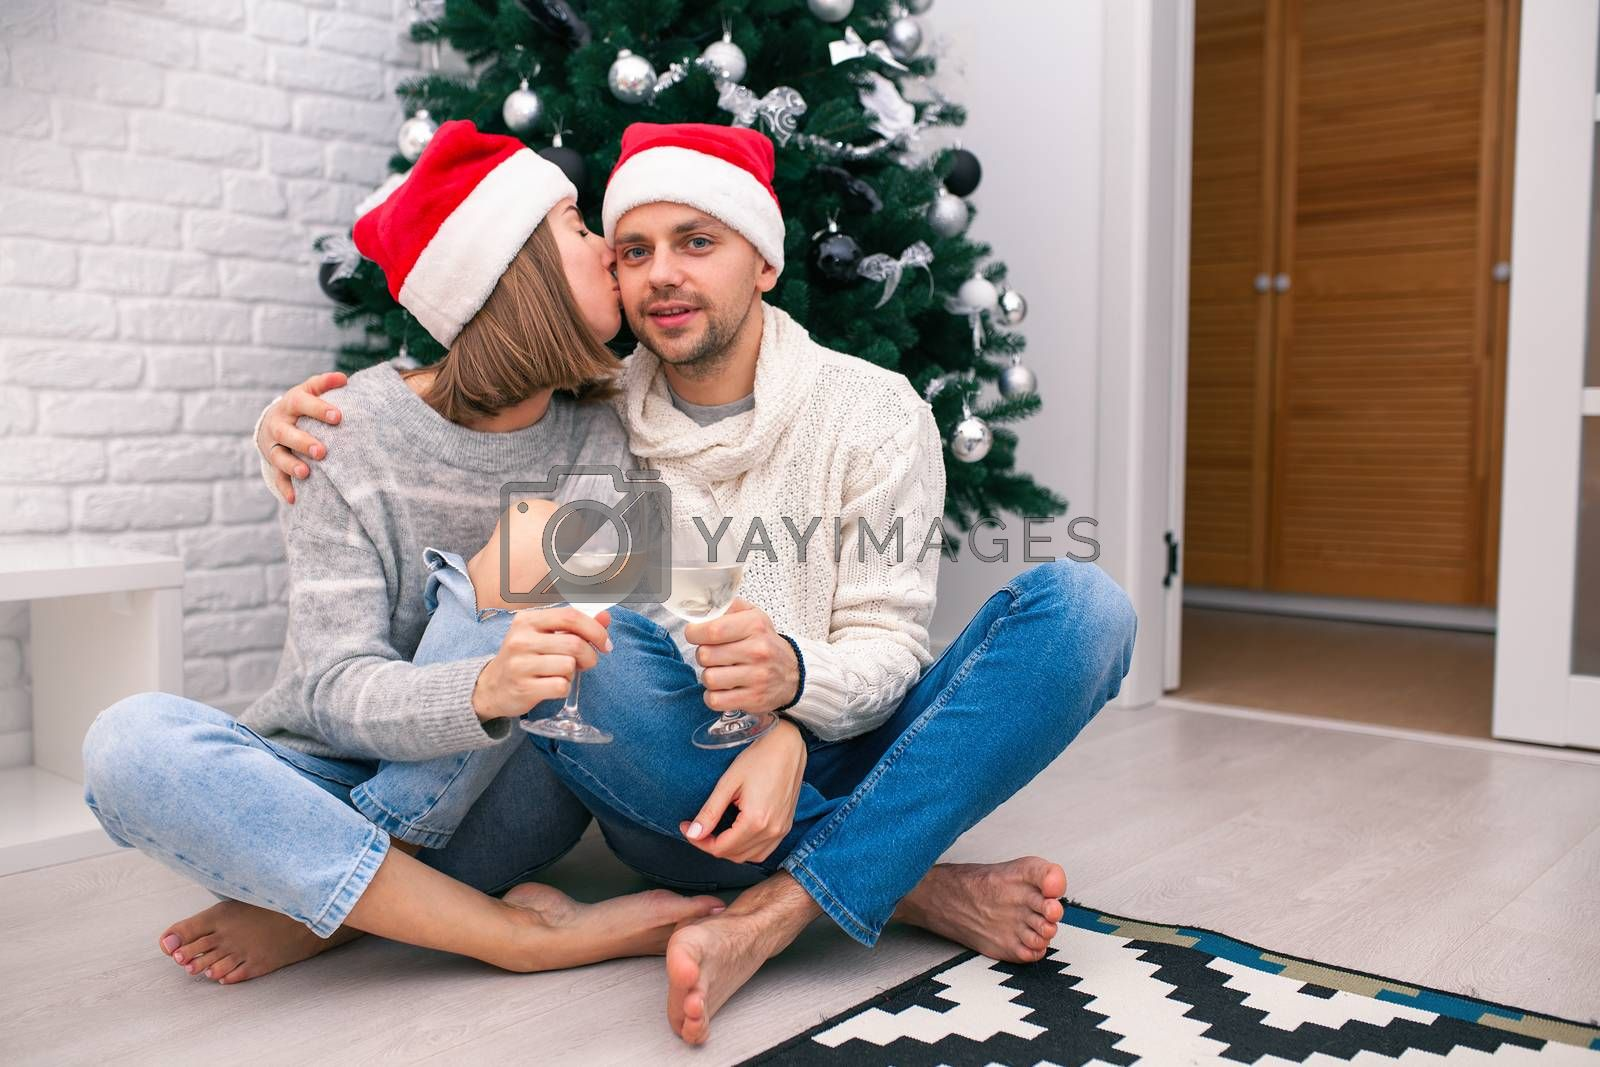 Young happy couple in Christmas hats near a Christmas tree kissing, holding glasses of wine. New Year celebration. Happy New Year Family Concept. Christmas for two